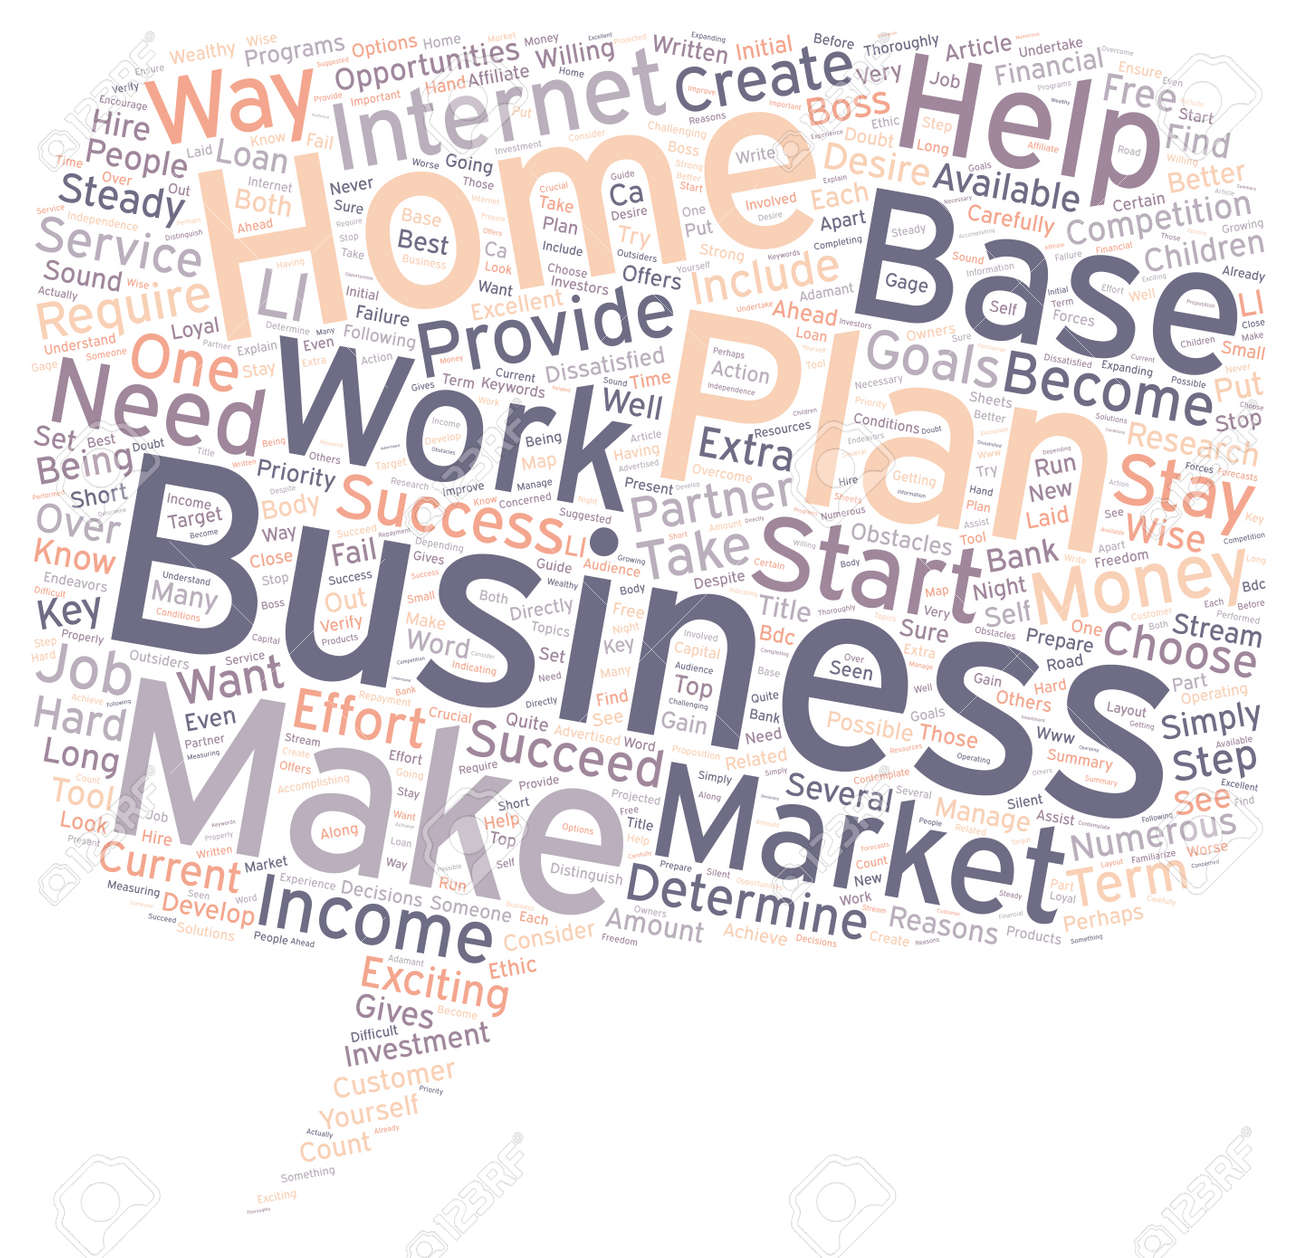 You Can Make Money With A Home Based Business Your Business Plan ...